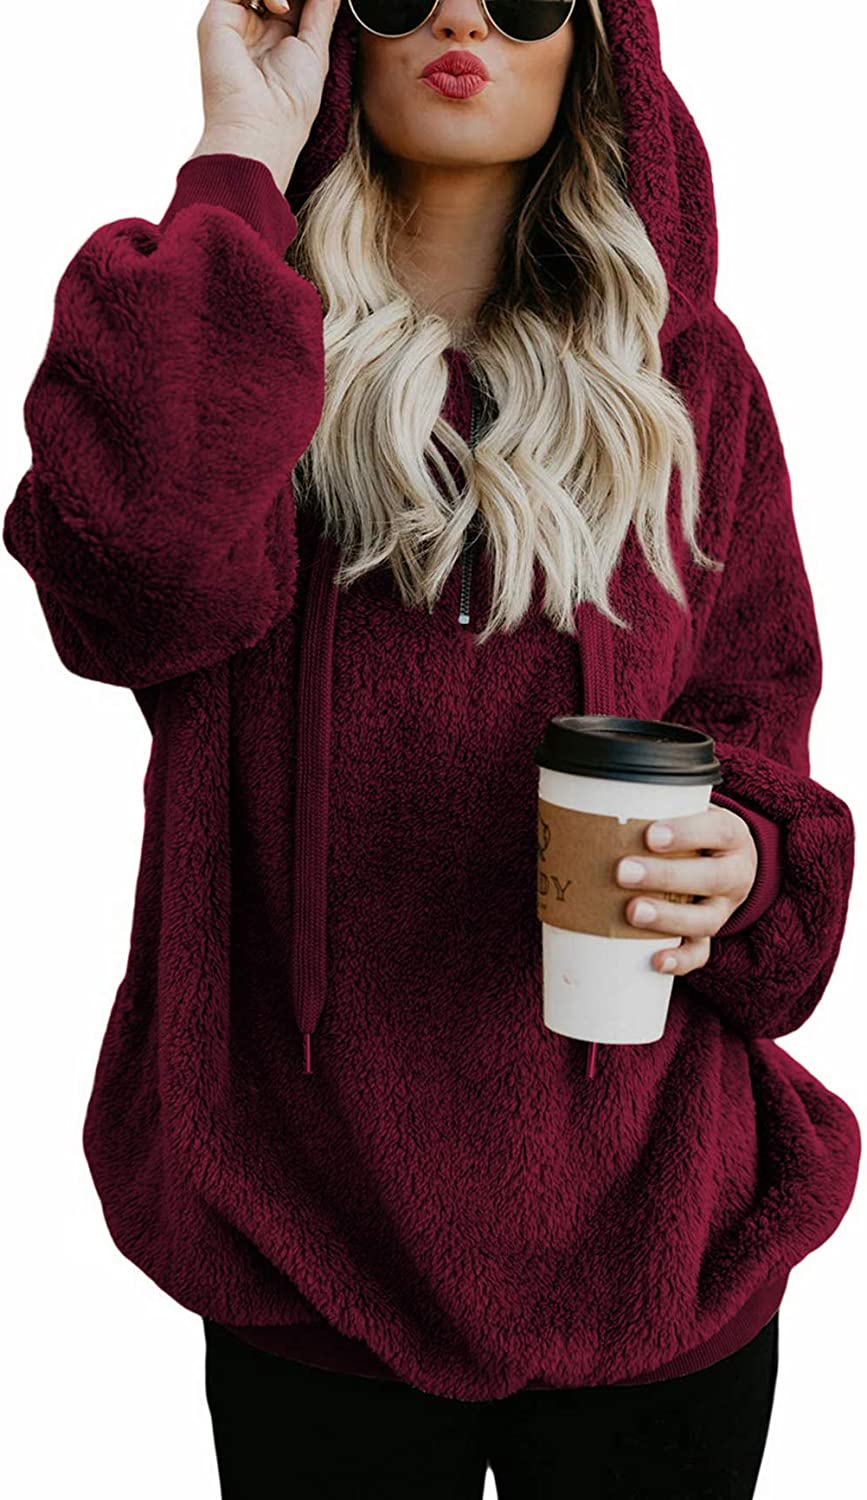 All items in the store American Trends Easy-to-use Oversized Sweatshirts for Womens Women Athletic